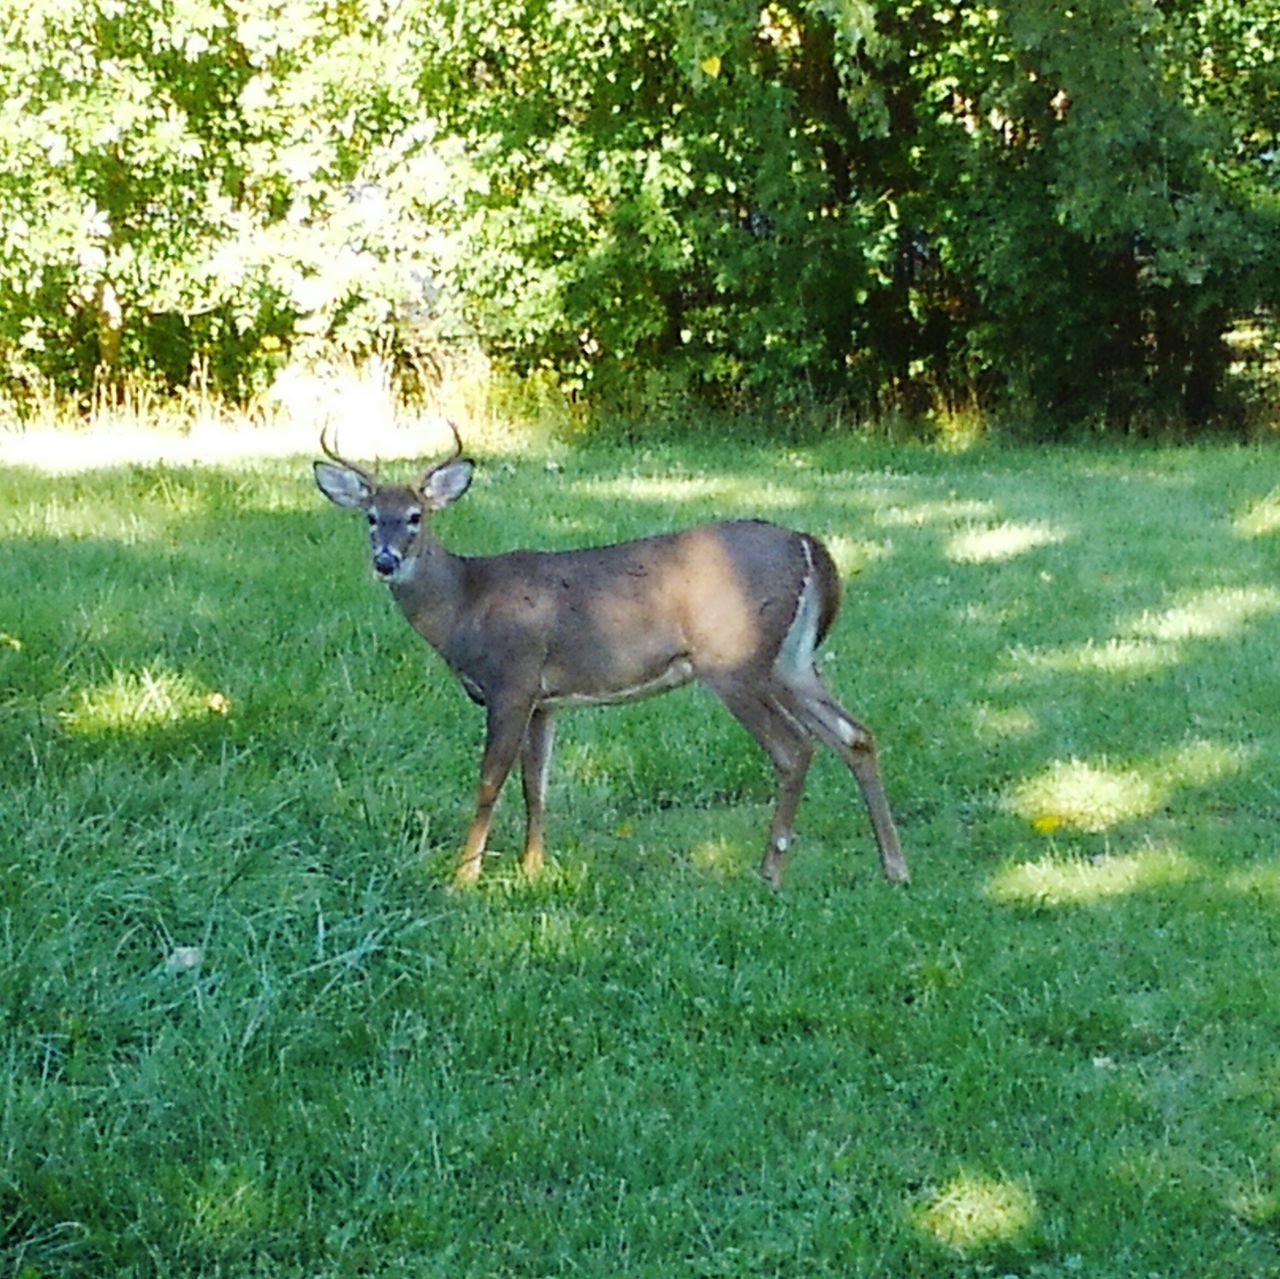 grass, animal themes, field, deer, nature, green color, growth, mammal, no people, day, outdoors, animals in the wild